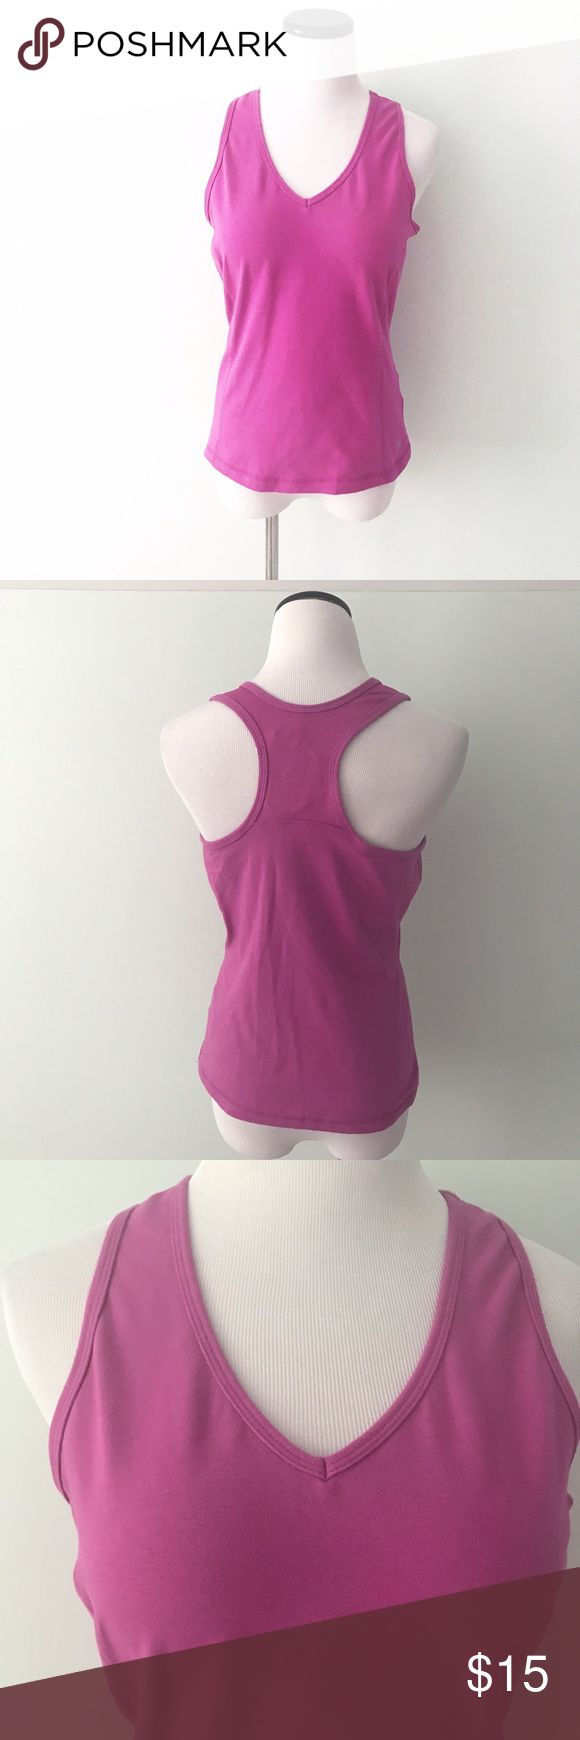 NWT Athletic Works Pink Gym Tank Top New with tags. Has built in shelf bra. Racerback design. Athletic Works Tops Tank Tops